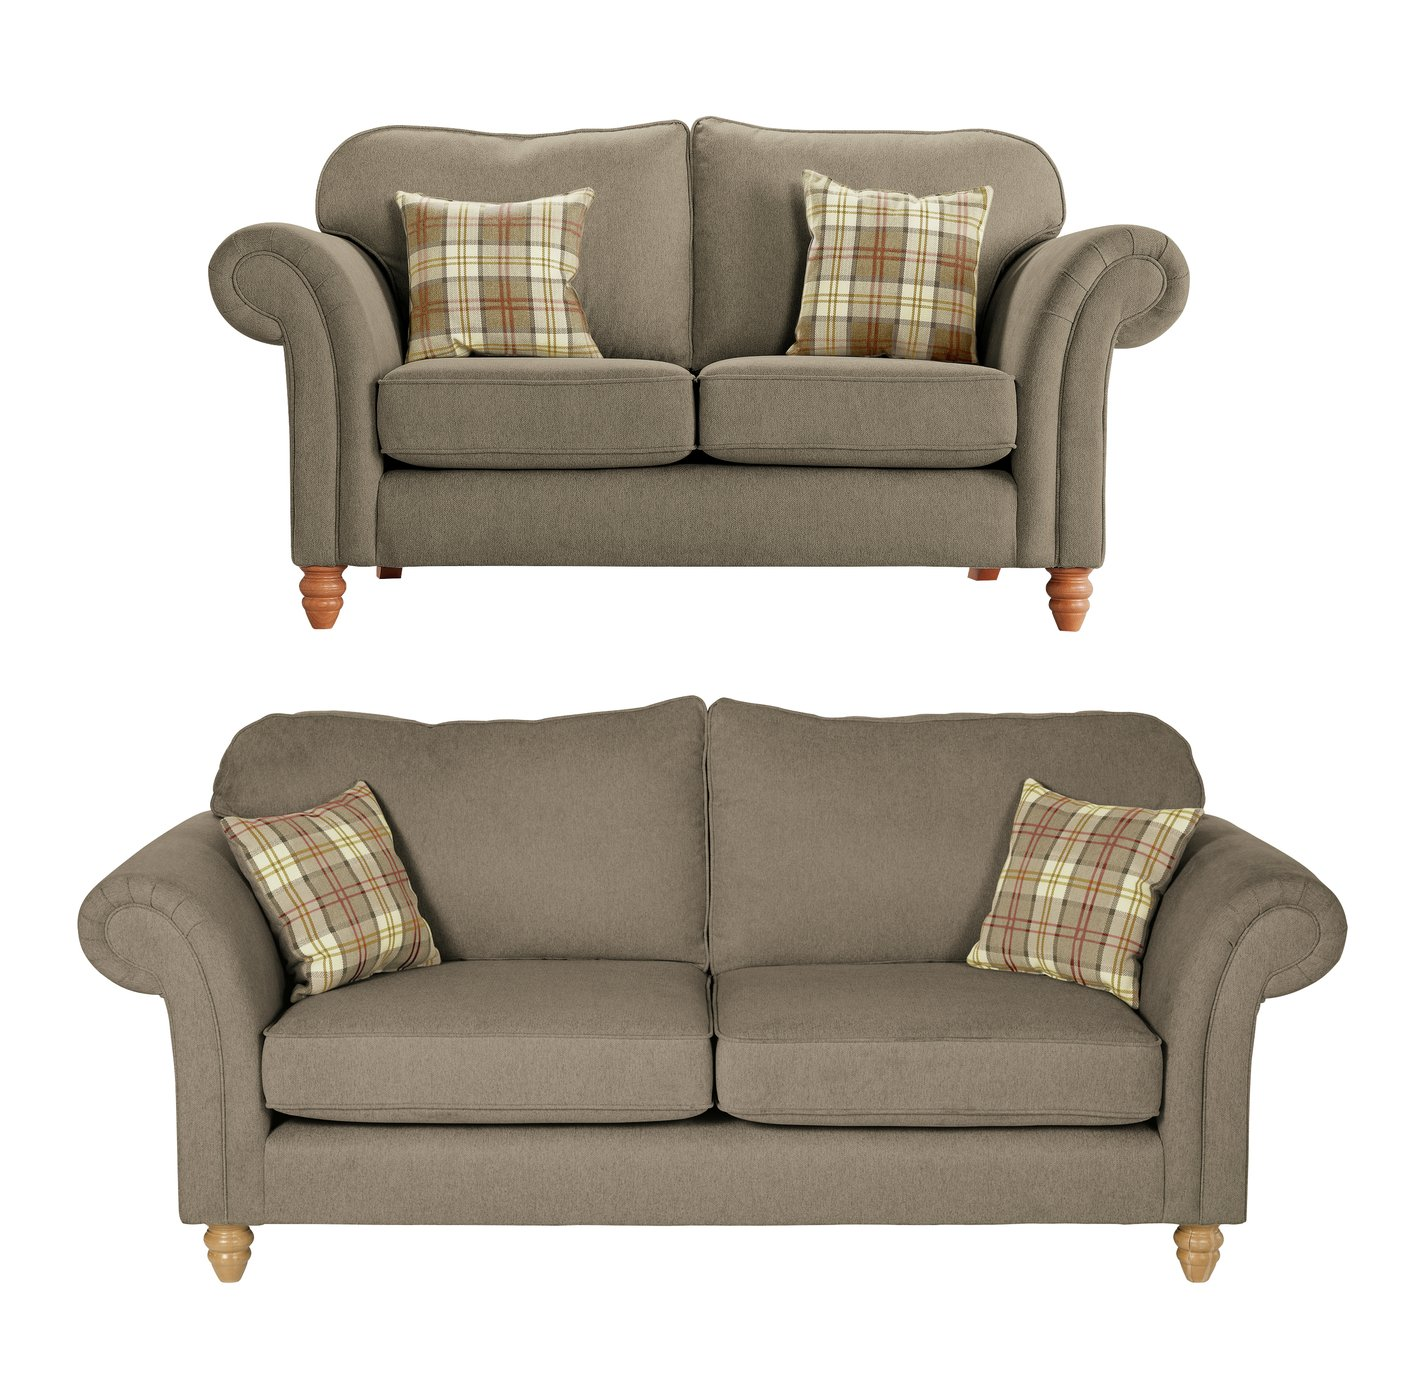 Argos Home Windsor Fabric 2 Seater & 3 Seater Sofa review